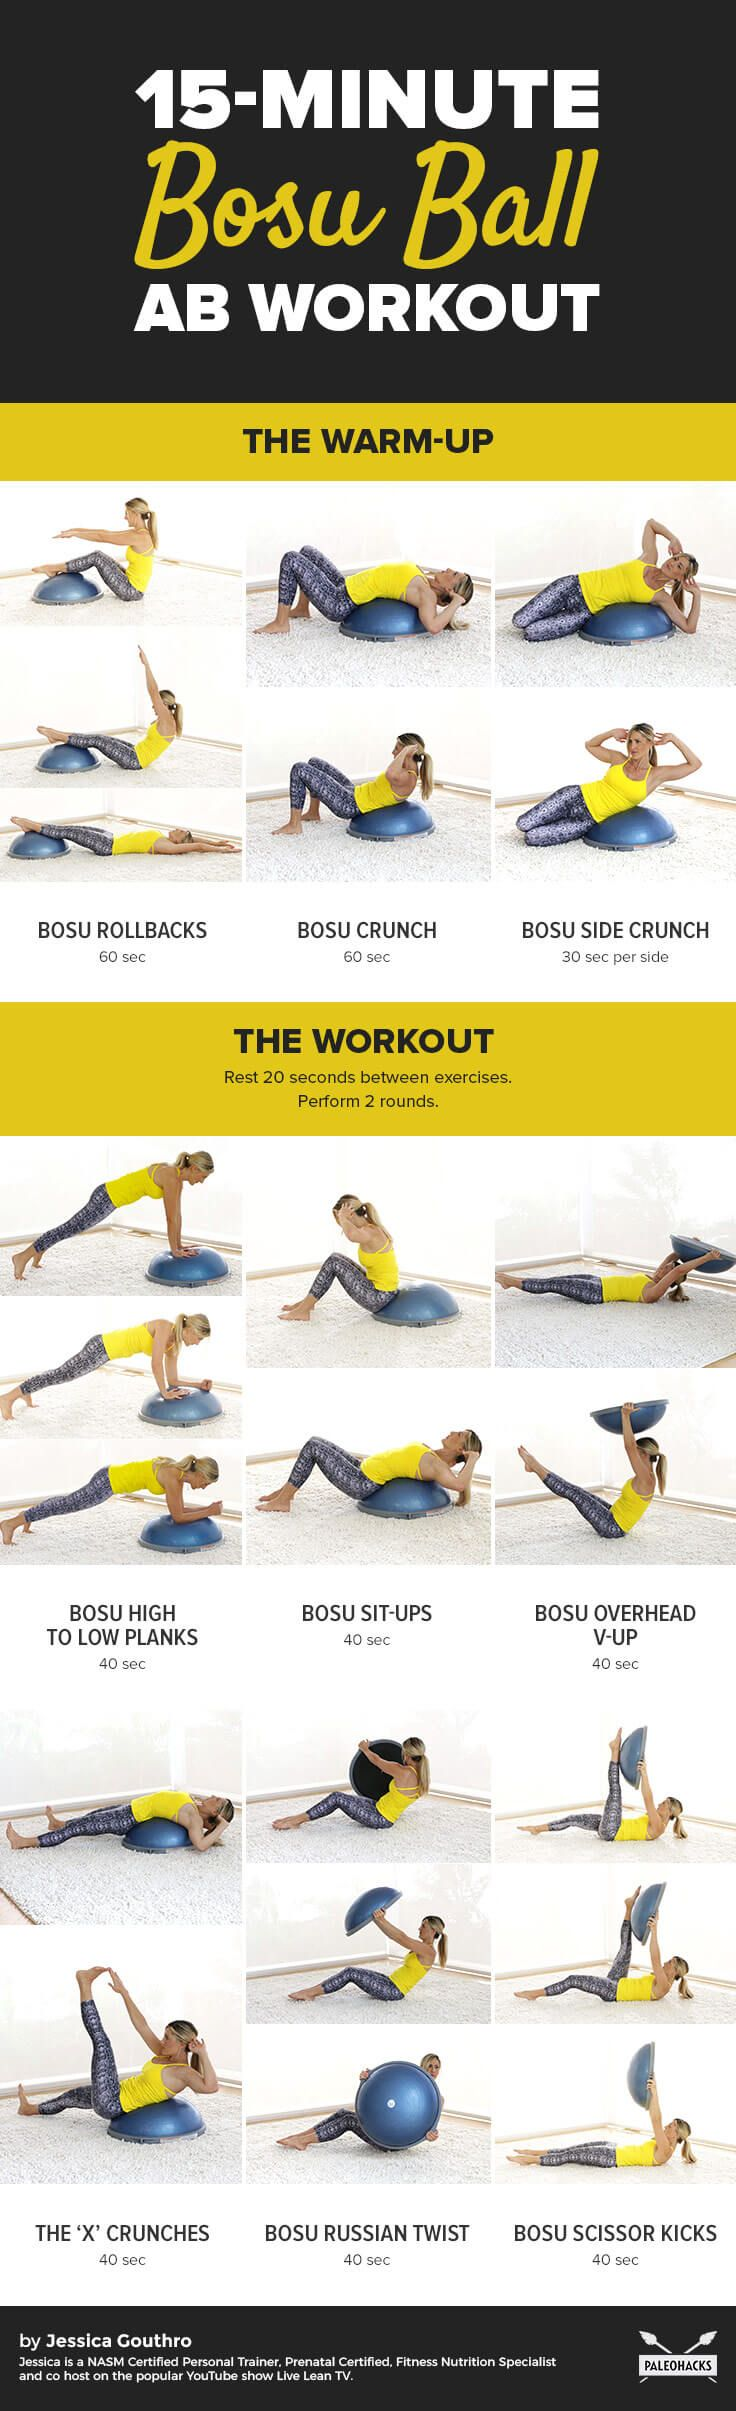 This bosu ball ab workout tightens and tones your abs from every angle. Do this workout anywhere—from the gym or the comfort of your home! Get the full workout here: http://paleo.co/bosuballworkout